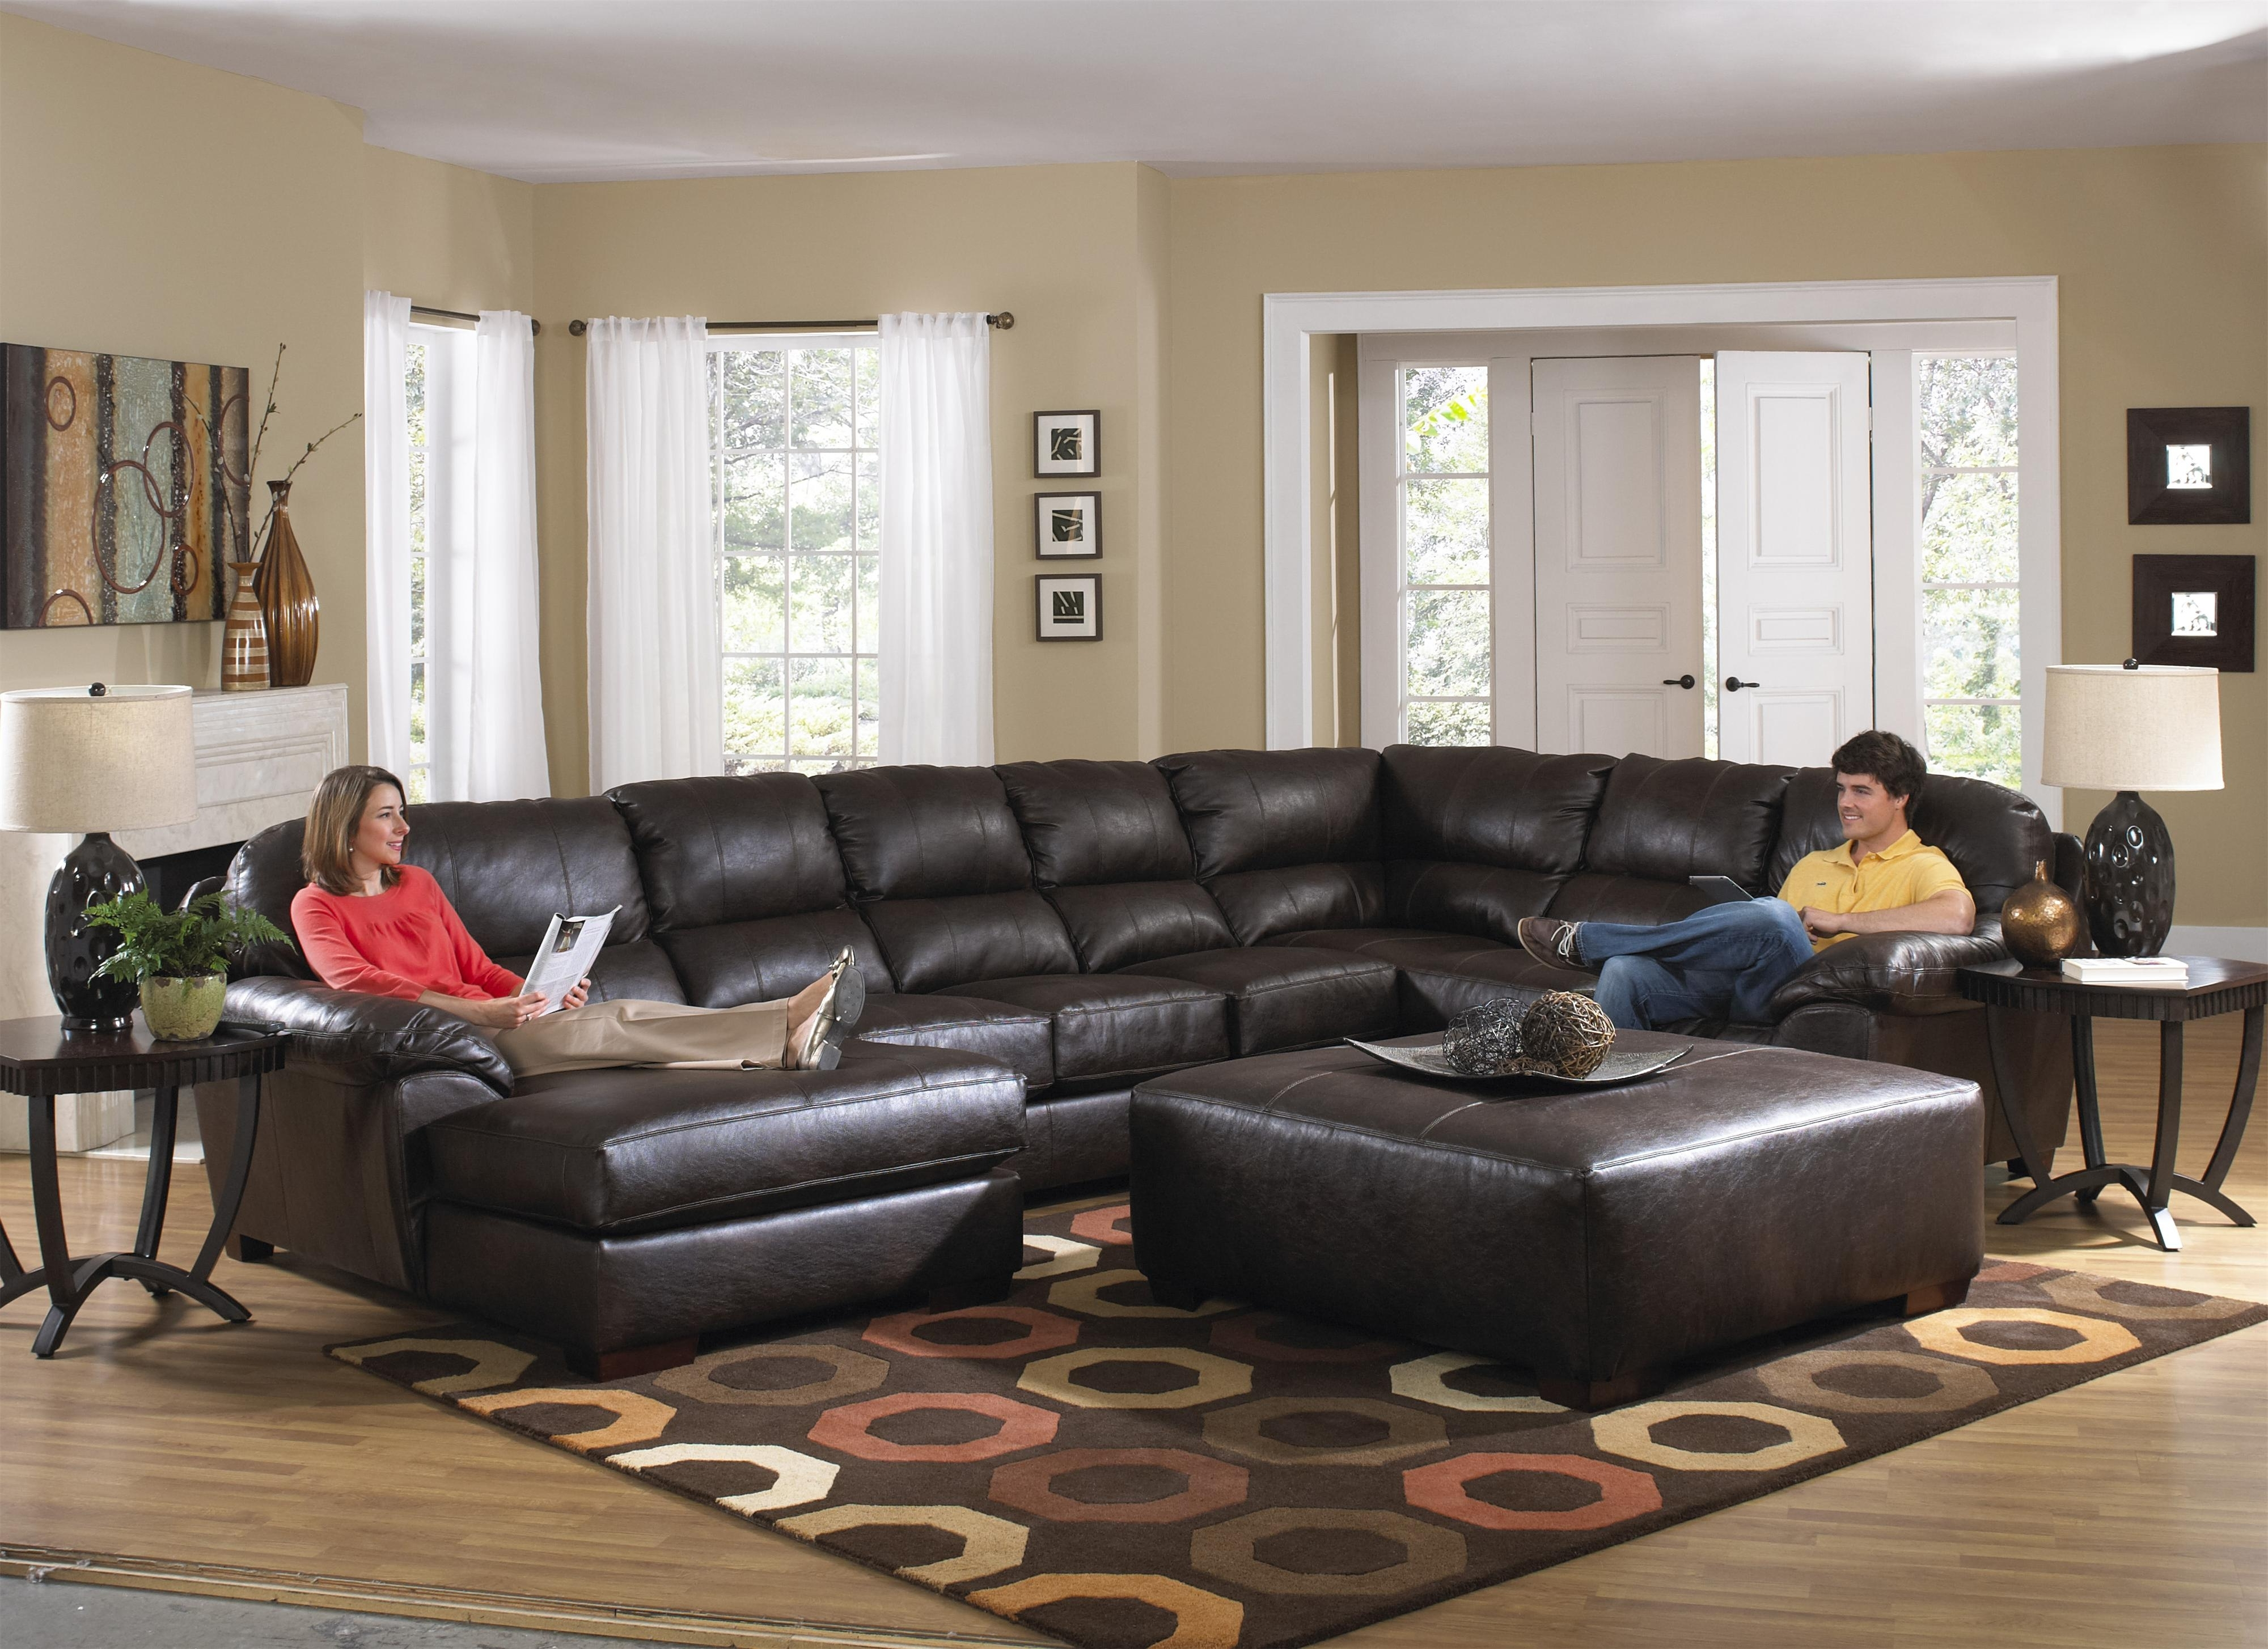 Oversized Couches Ashley Furniture Extra Deep Couch Oversized Inside Widely Used Oversized Sectional Sofas (View 10 of 20)